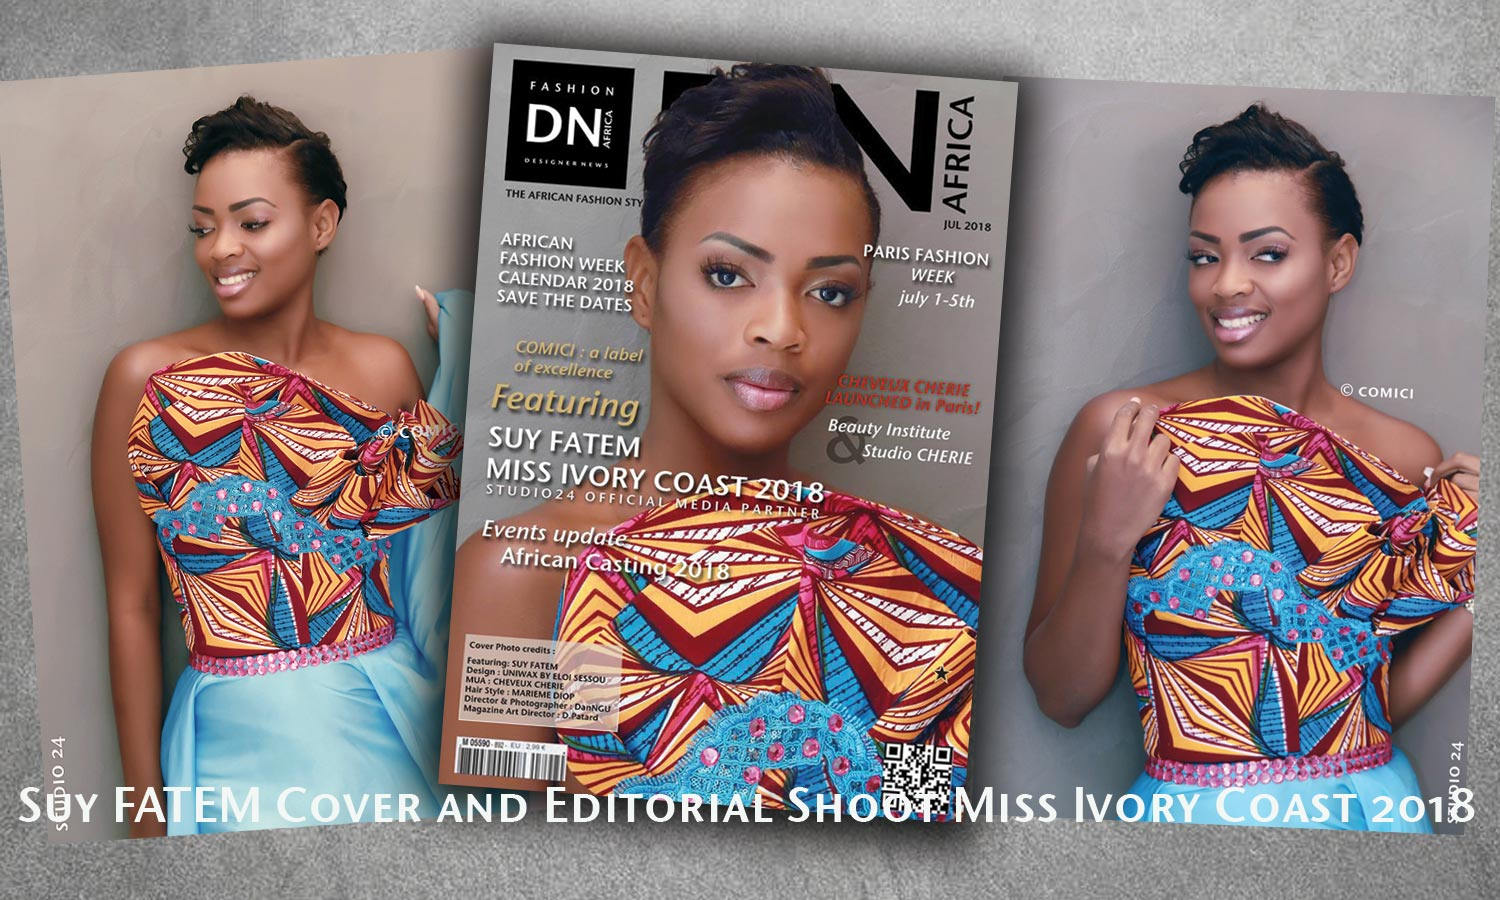 MISS COTE D'IVOIRE 2018 -AFRICAN FASHION STYLE MAGAZINE - MISS IVORY COAST 2018 - COVER MISS MARIE-DANIELLE SUY FATEM - DN AFRICA - STUDIO 24 NIGERIA - CHEVEUX CHERIE HAIRSTYLE MUA